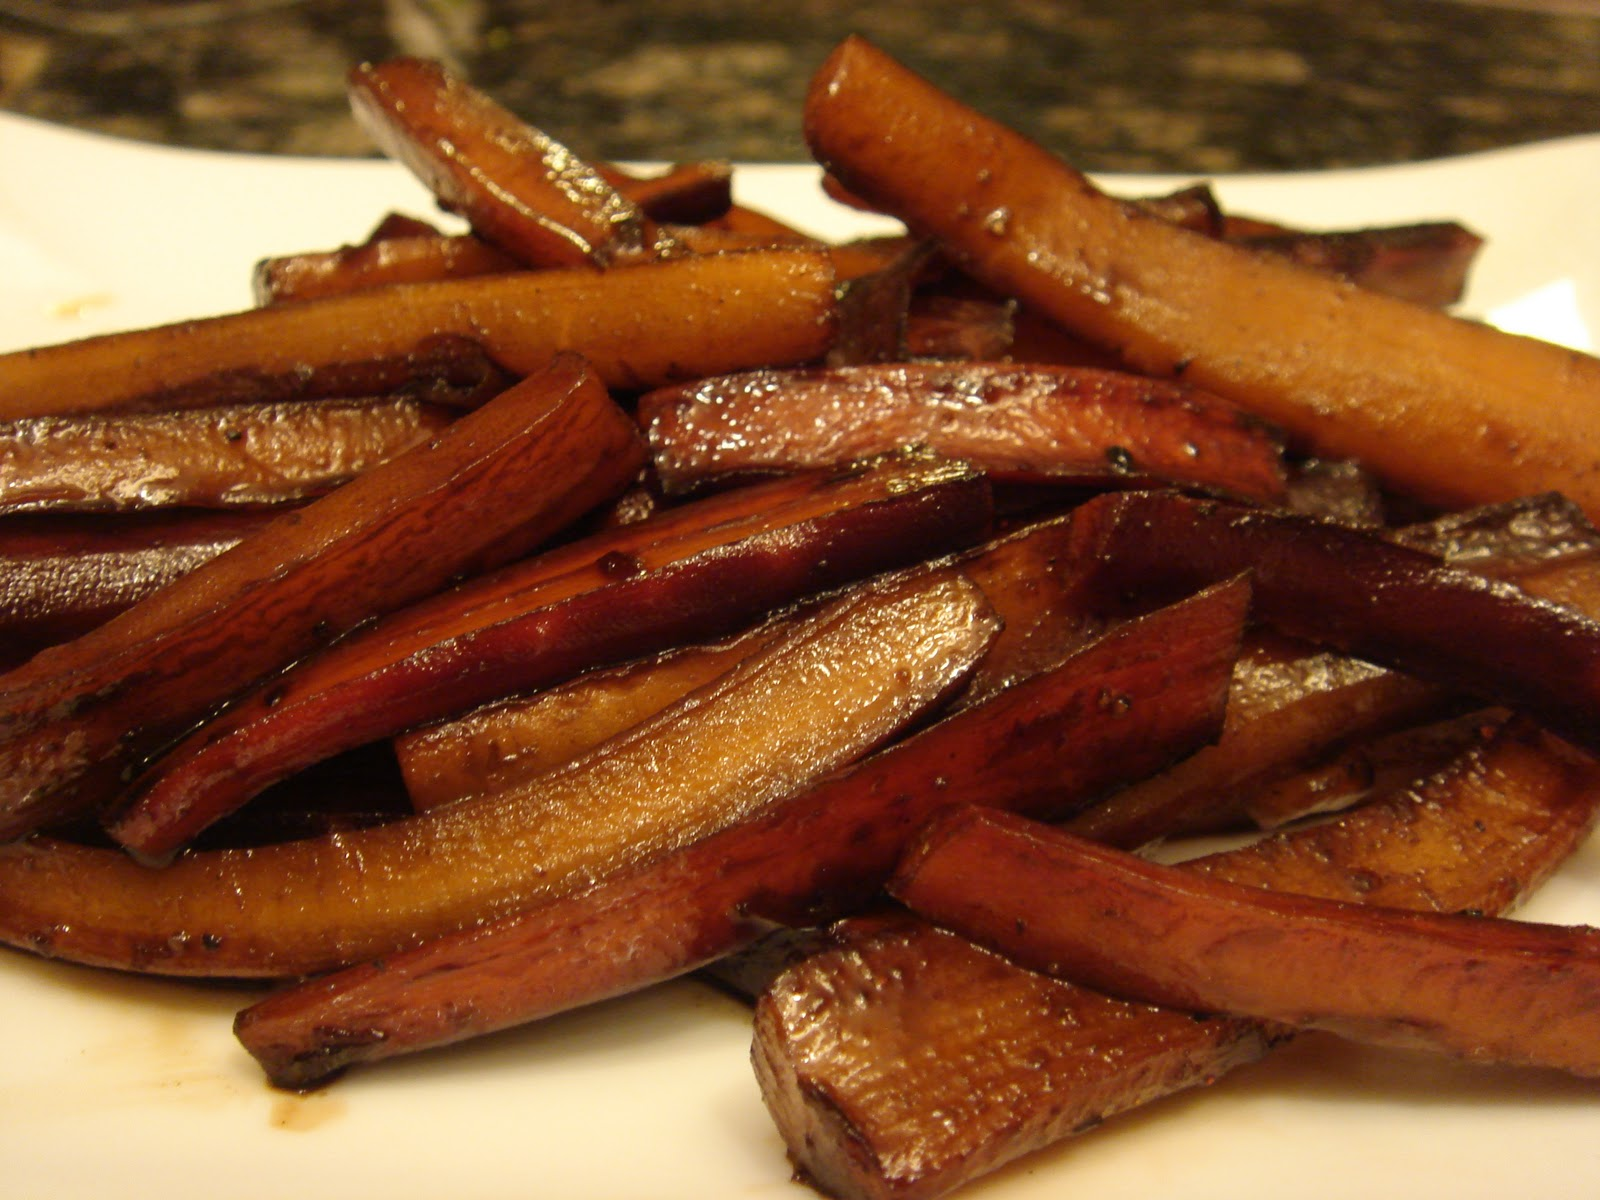 Pomegranate-Balsamic Glazed Carrots | Generation Y Foodie